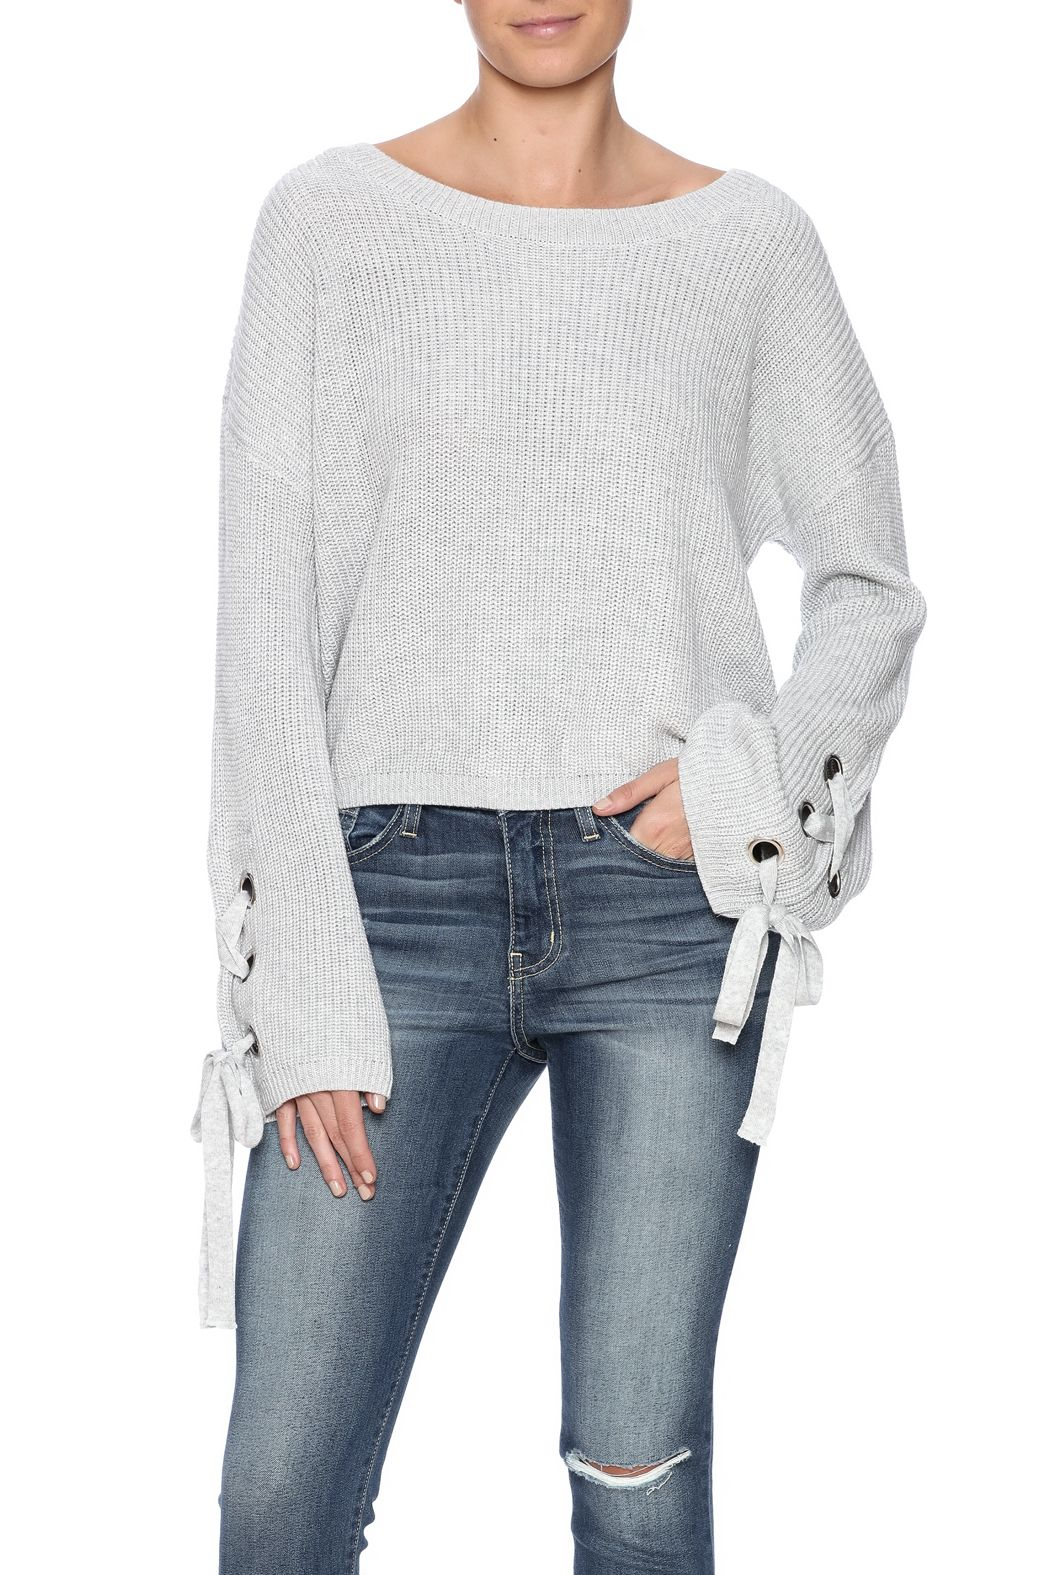 e1ef1064ab Light grey sweater with long sleeves boat neckline and grommet lace up  detailing. Tie Sleeve Sweater by Mono B. Clothing - Sweaters - Crew   Scoop  Neck New ...